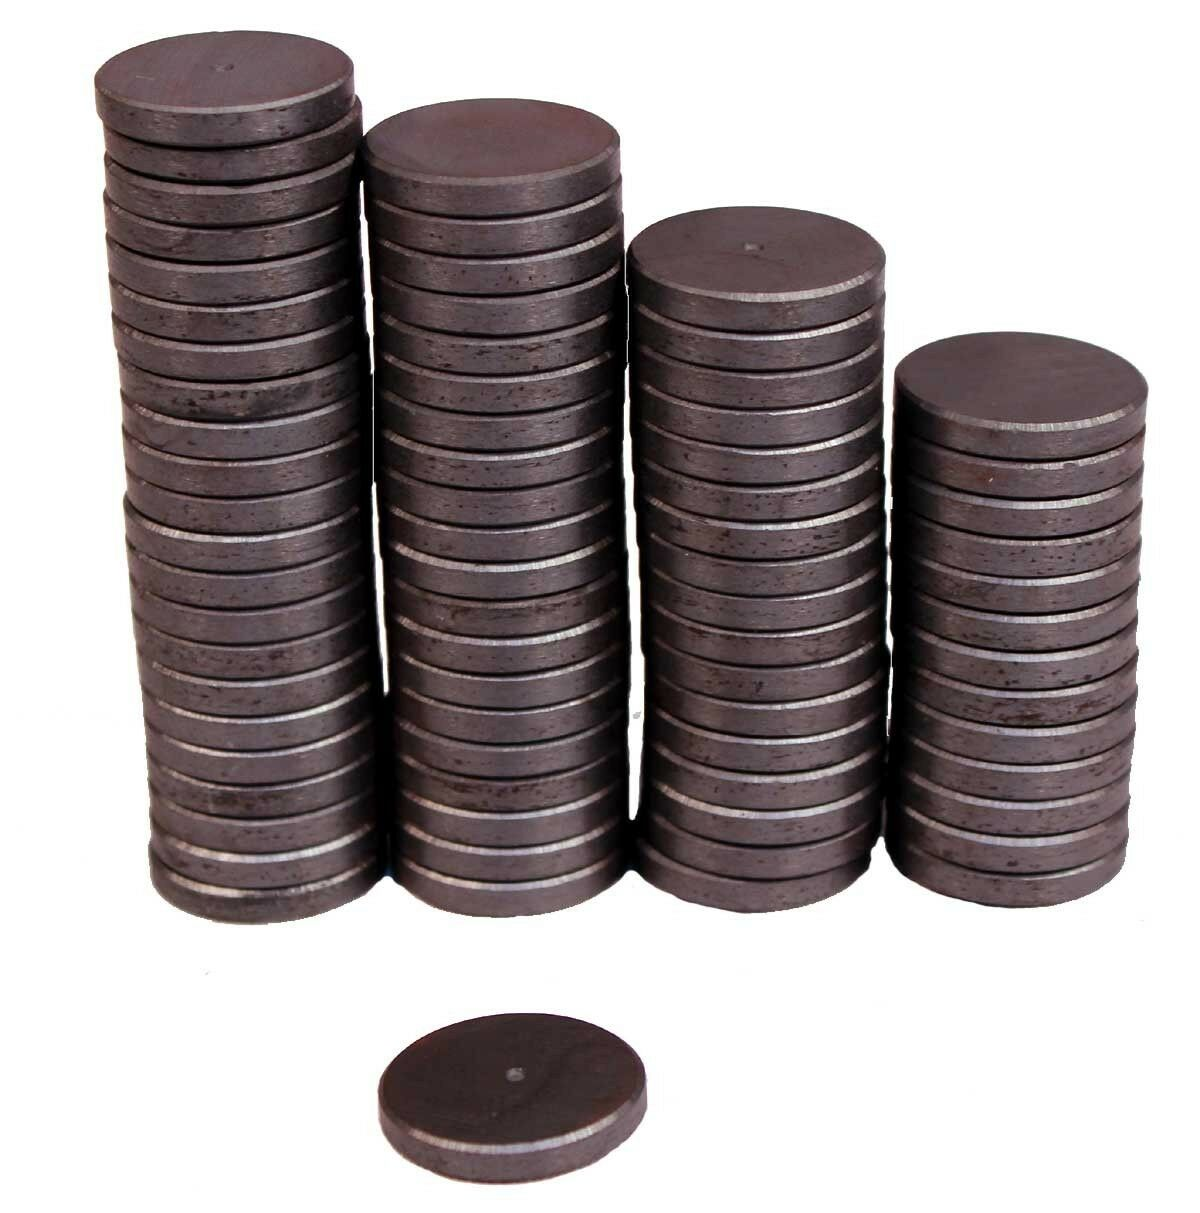 Strong 1 Inch Round Flat Ceramic Disc Magnets For DIY Crafts ~ Lot of 25 Pieces All-Purpose Craft Supplies